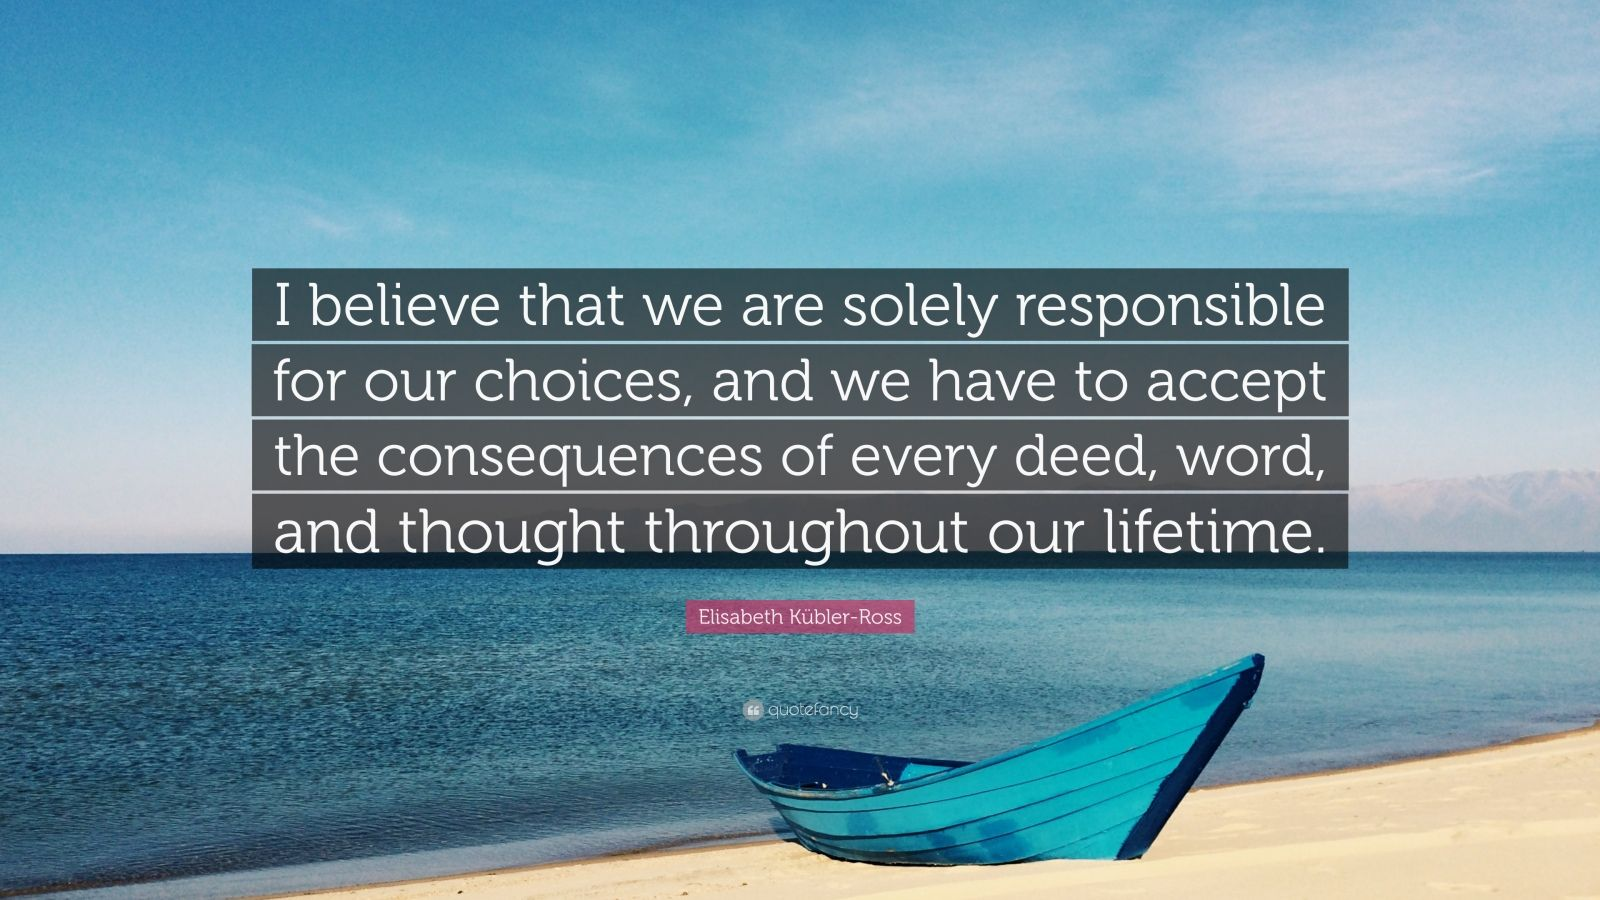 """Elisabeth Kübler-Ross Quote: """"I believe that we are solely responsible for our choices, and we have to accept the consequences of every deed, word, and thought throughout our lifetime."""""""